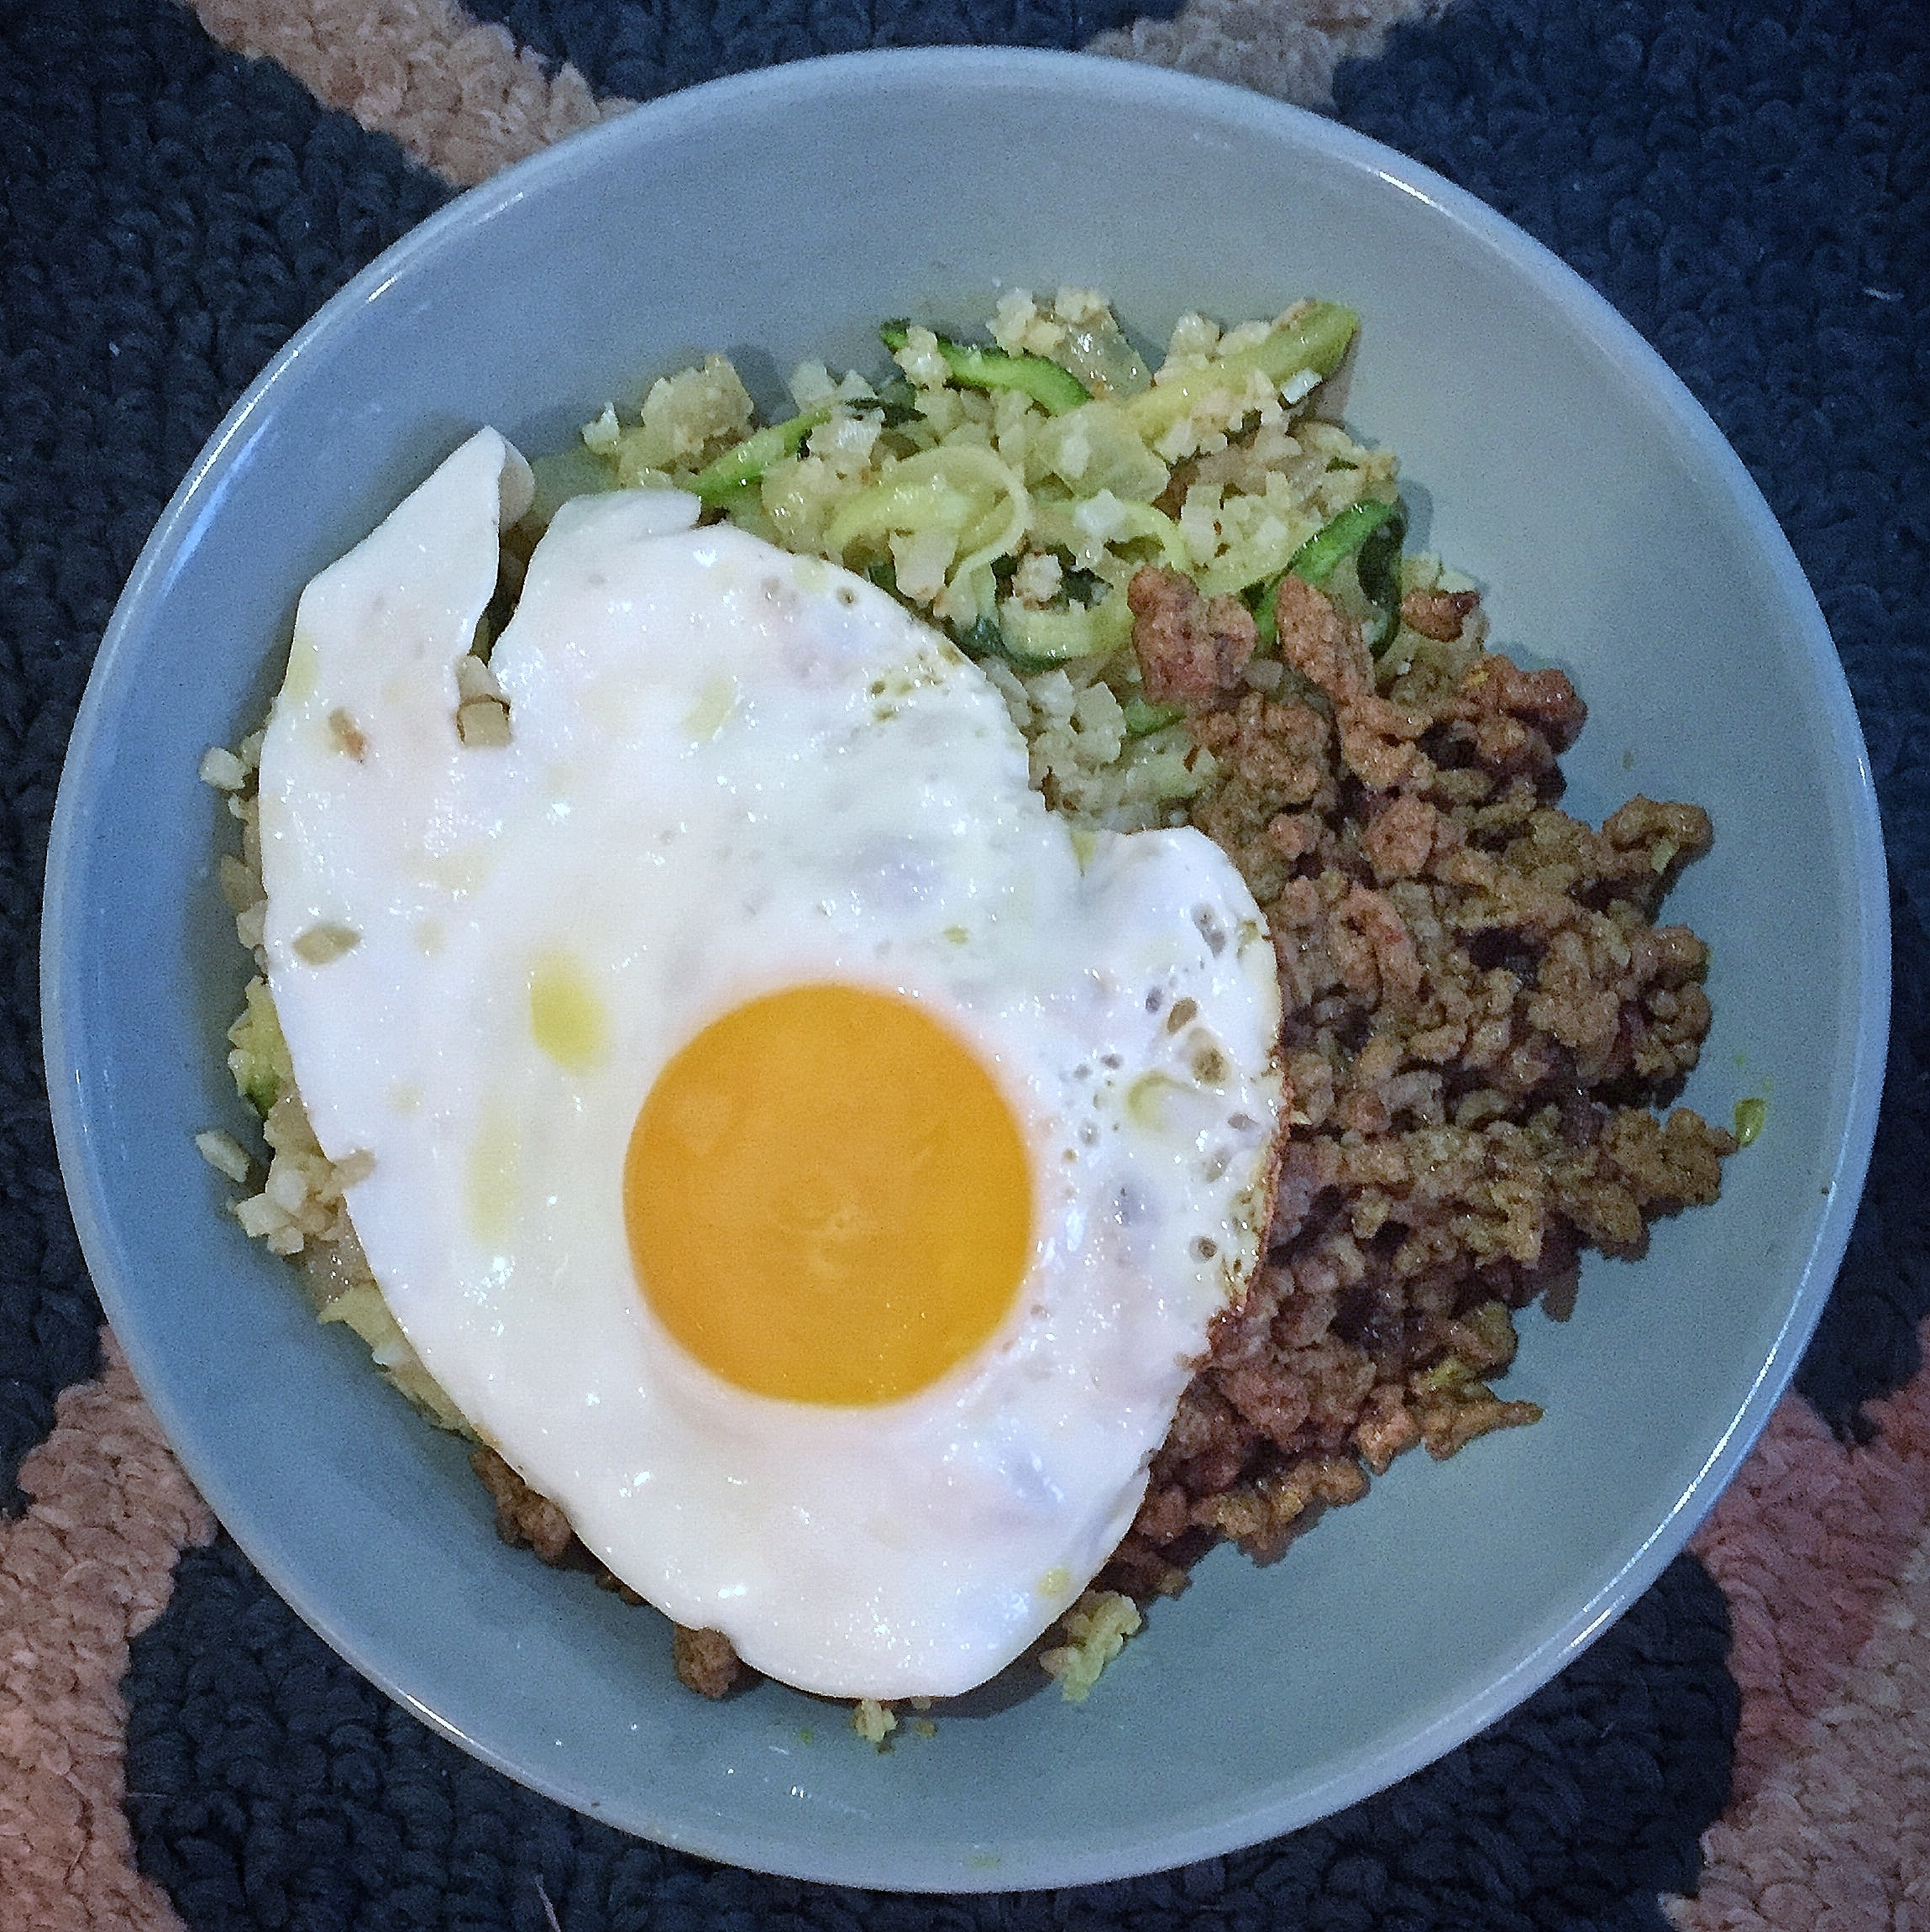 Ground beef seasoned with curry and mixed with zoodles (zucchini noodles), onions, cauliflower rice, and topped with a fried egg!